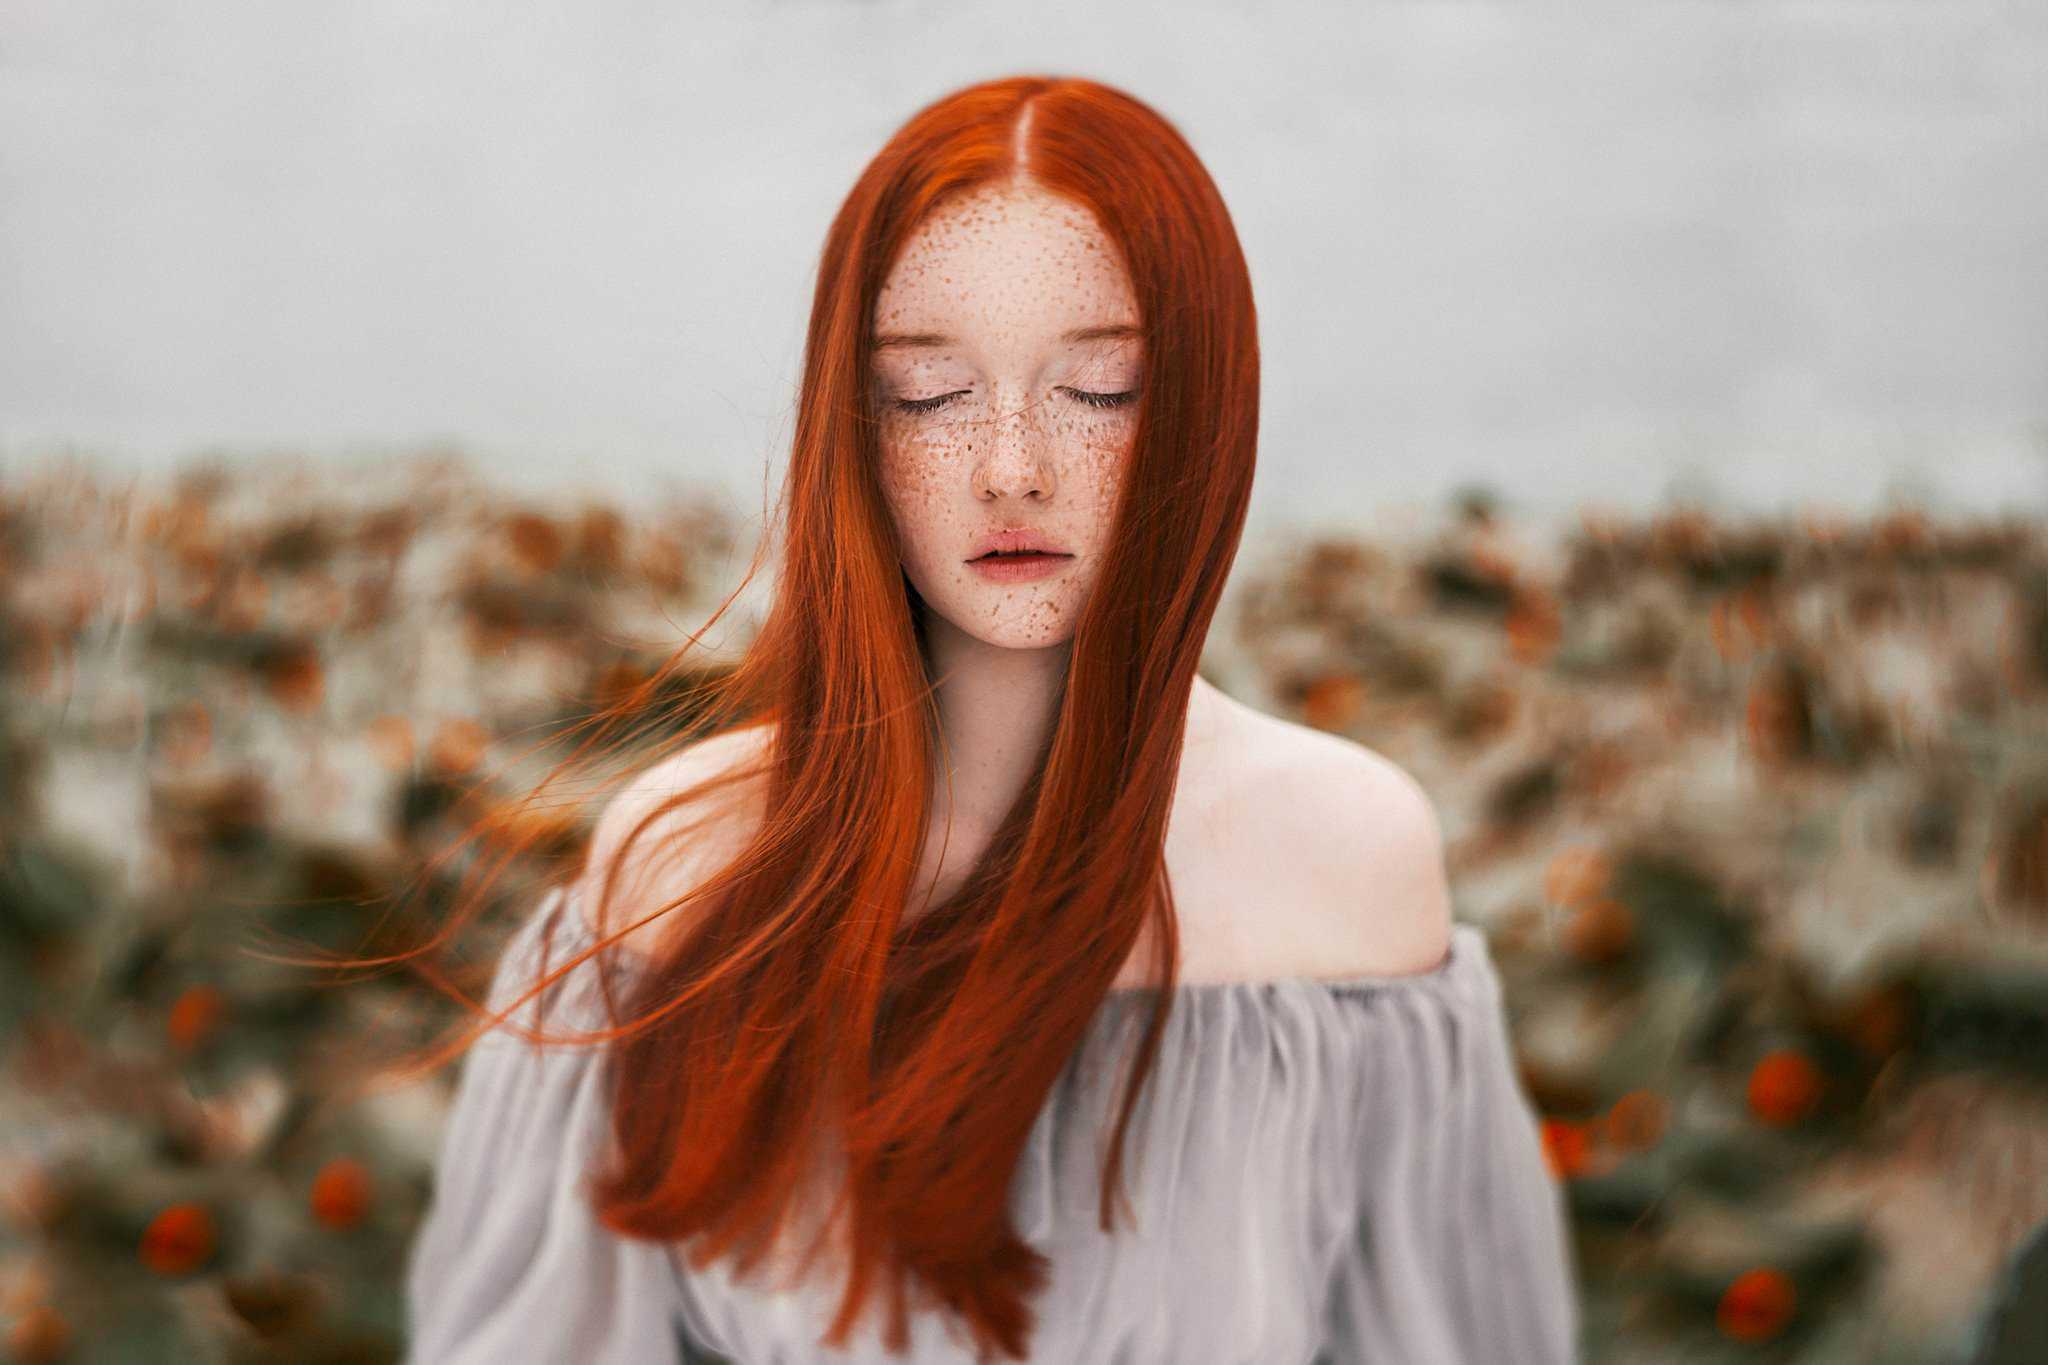 Stunning portrait of a young girl with red hairs